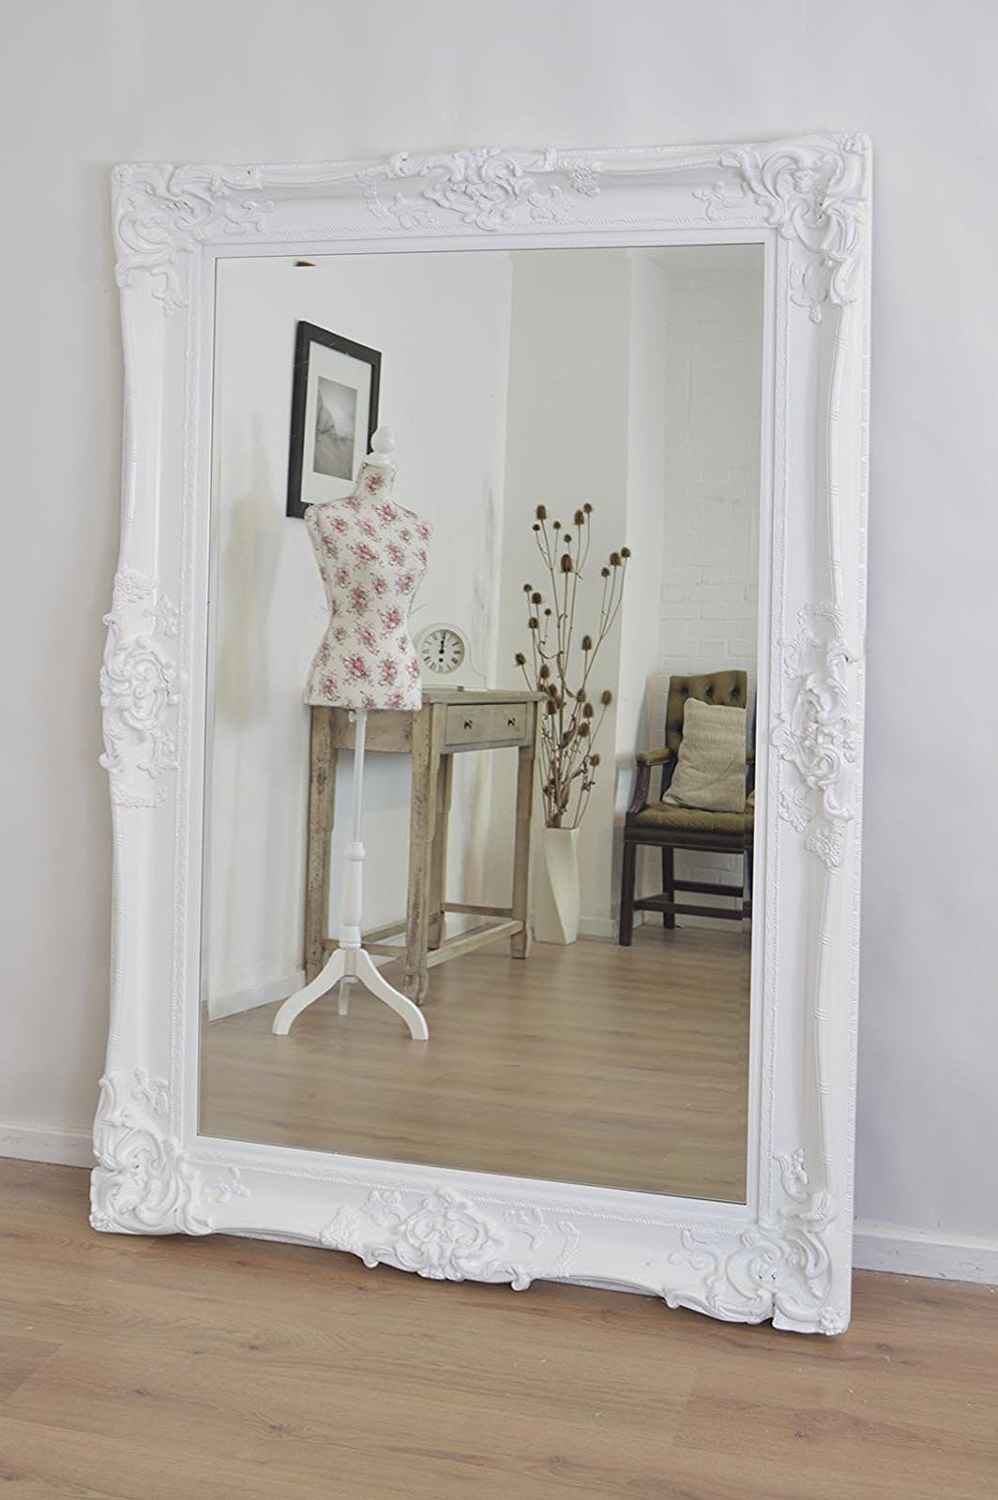 Widely Used Large Mirror Wall Mirrors Floor Decoration Decorative Round Throughout White Shabby Chic Wall Mirrors (View 12 of 20)